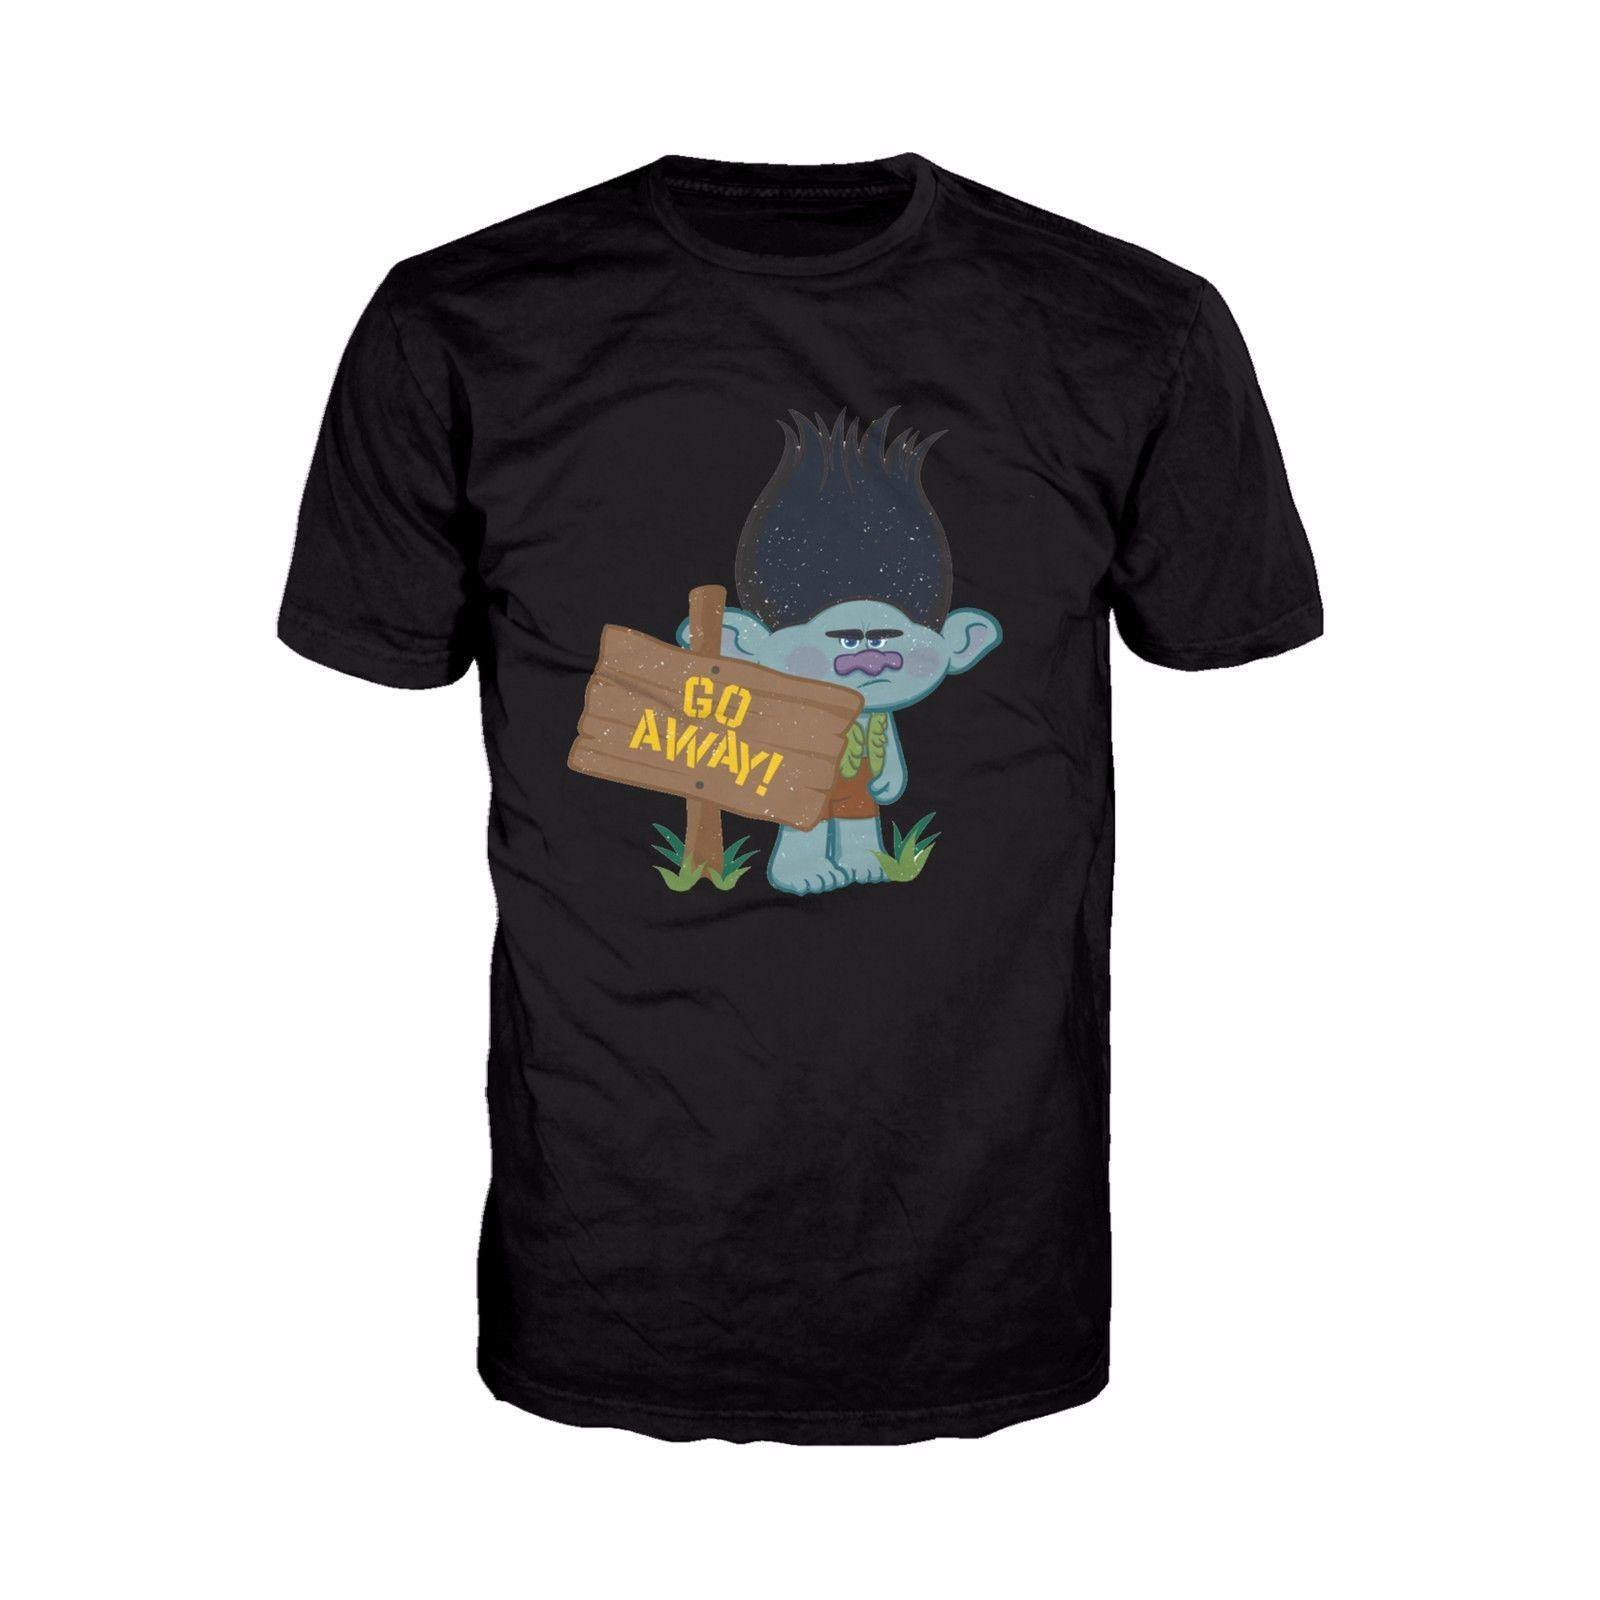 faa09b0e Trolls Movie Go Away Official Men'S T Shirt Black Dreamworks Funny ...